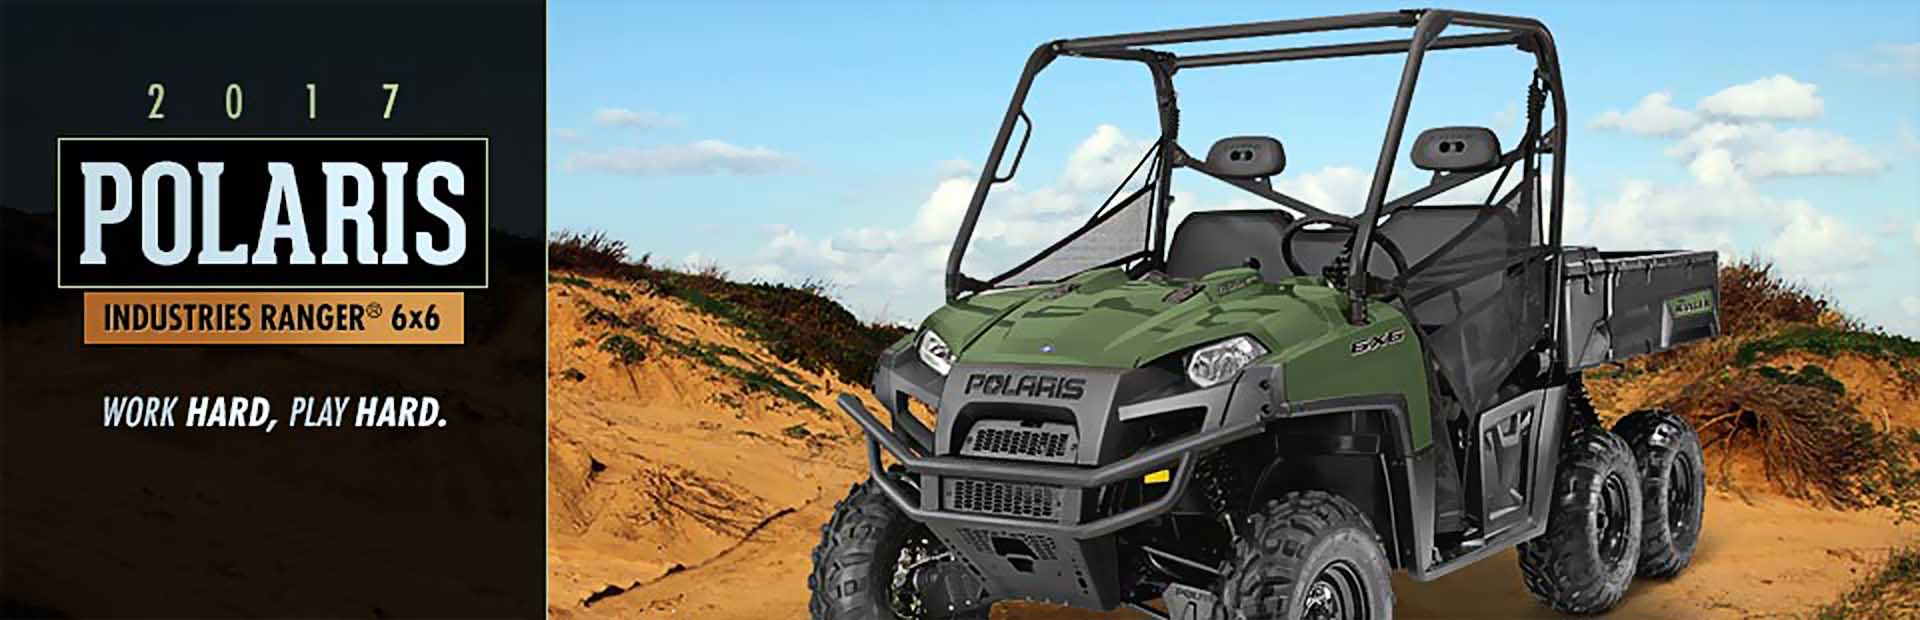 2017 Polaris Industries RANGER® 6x6: Click here for details.